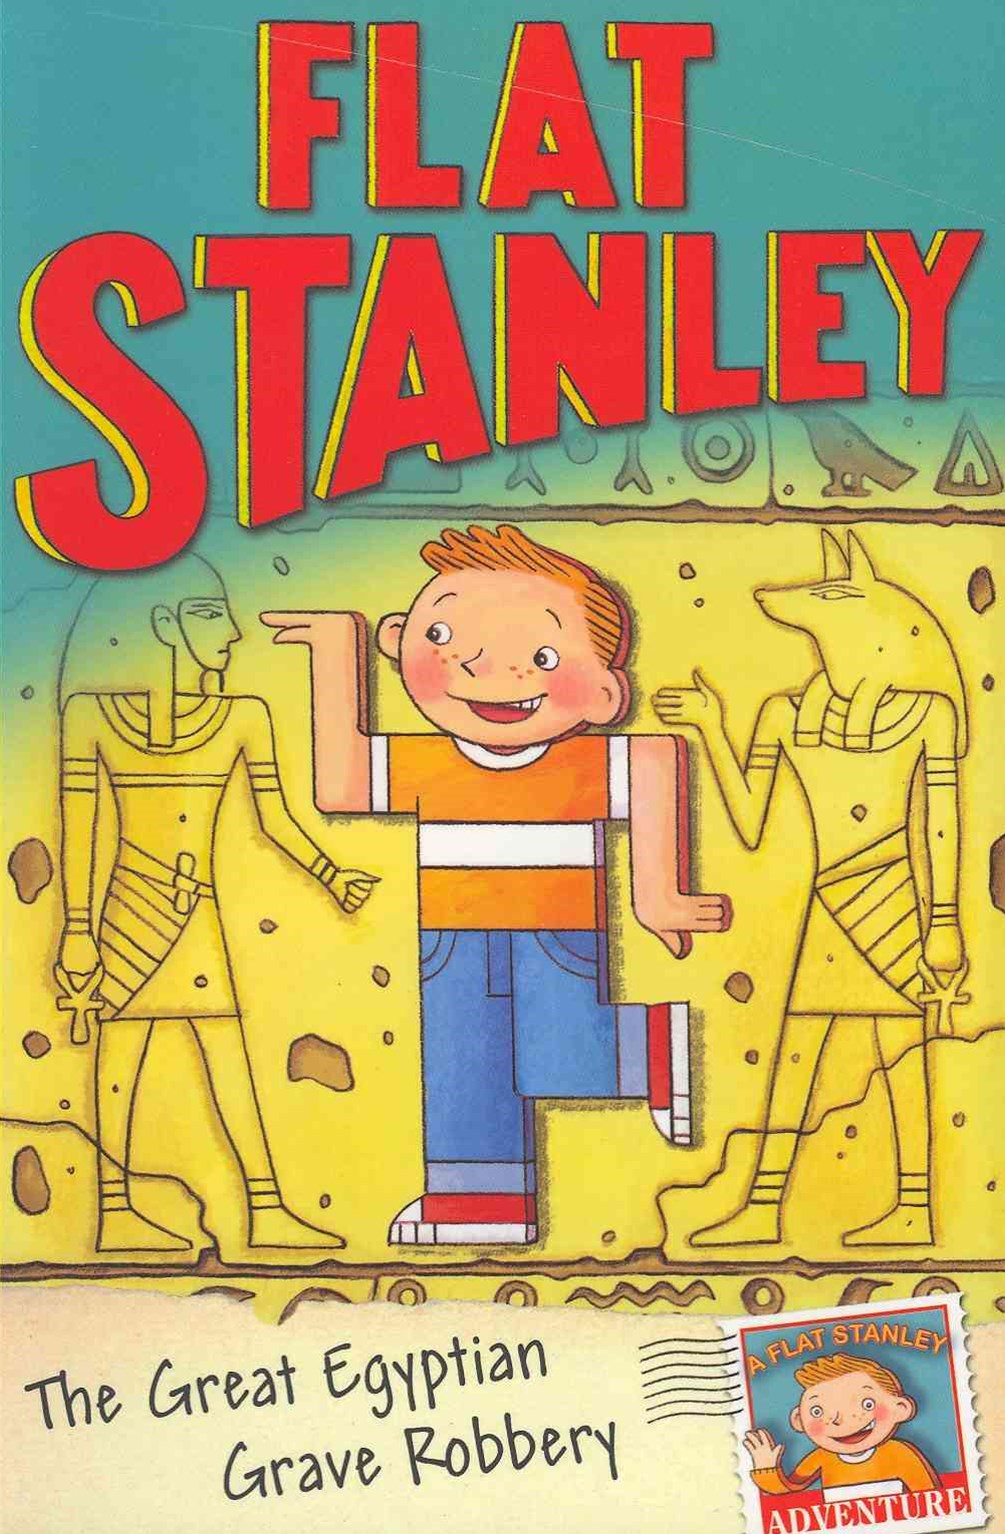 Jeff Brown's Flat Stanley: The Great Egyptian Grave Robbery